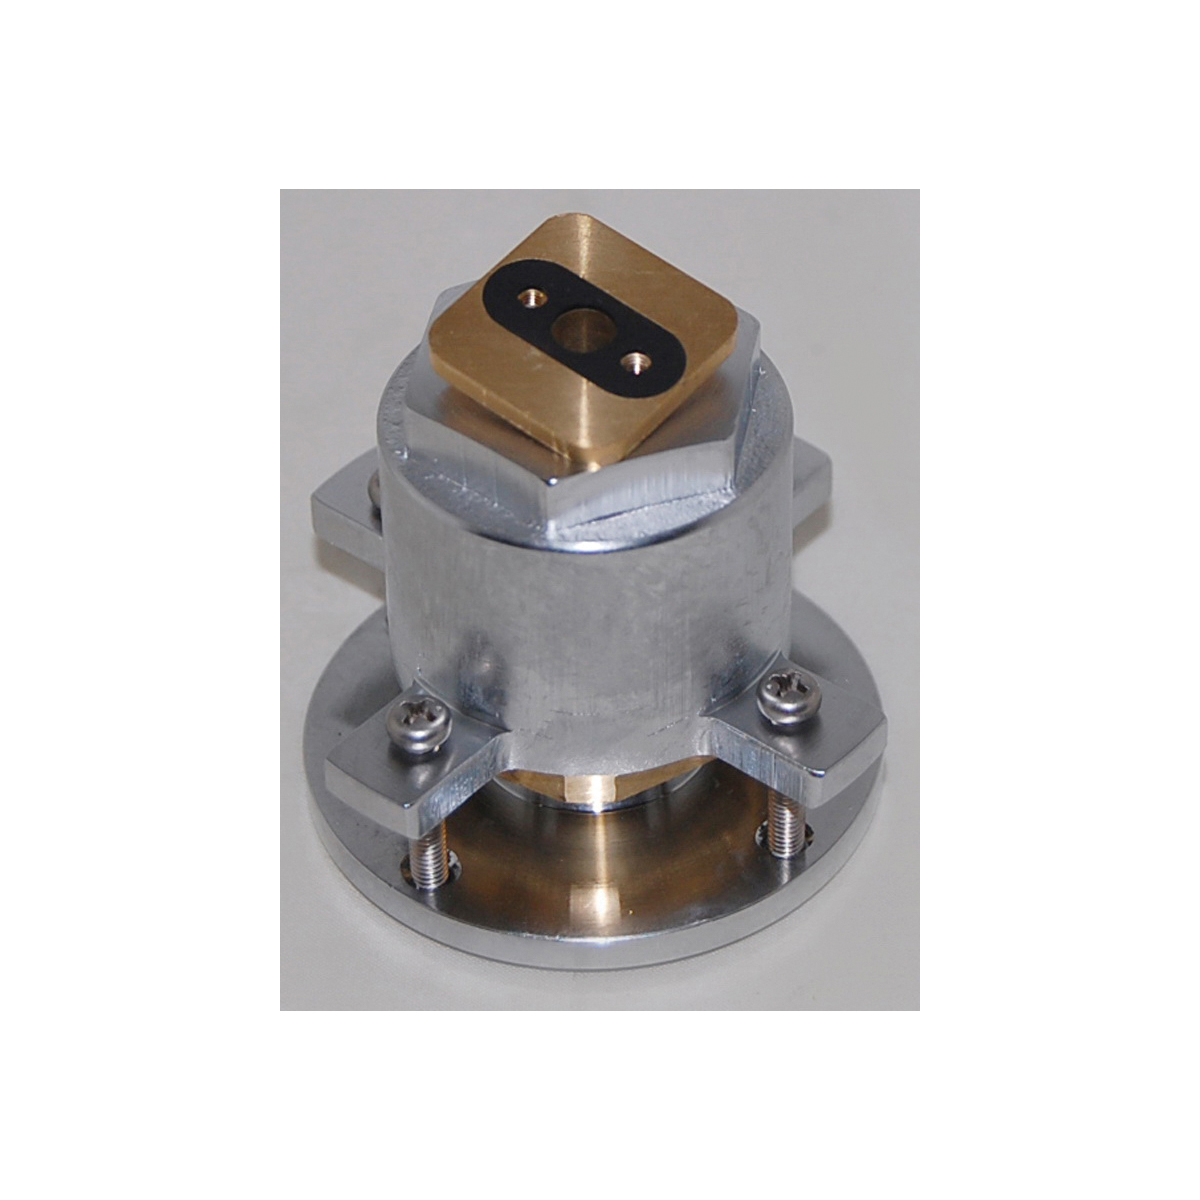 Toto® THP4378 Flow Control Unit, For Use With: Residential Shower Faucet, Brass